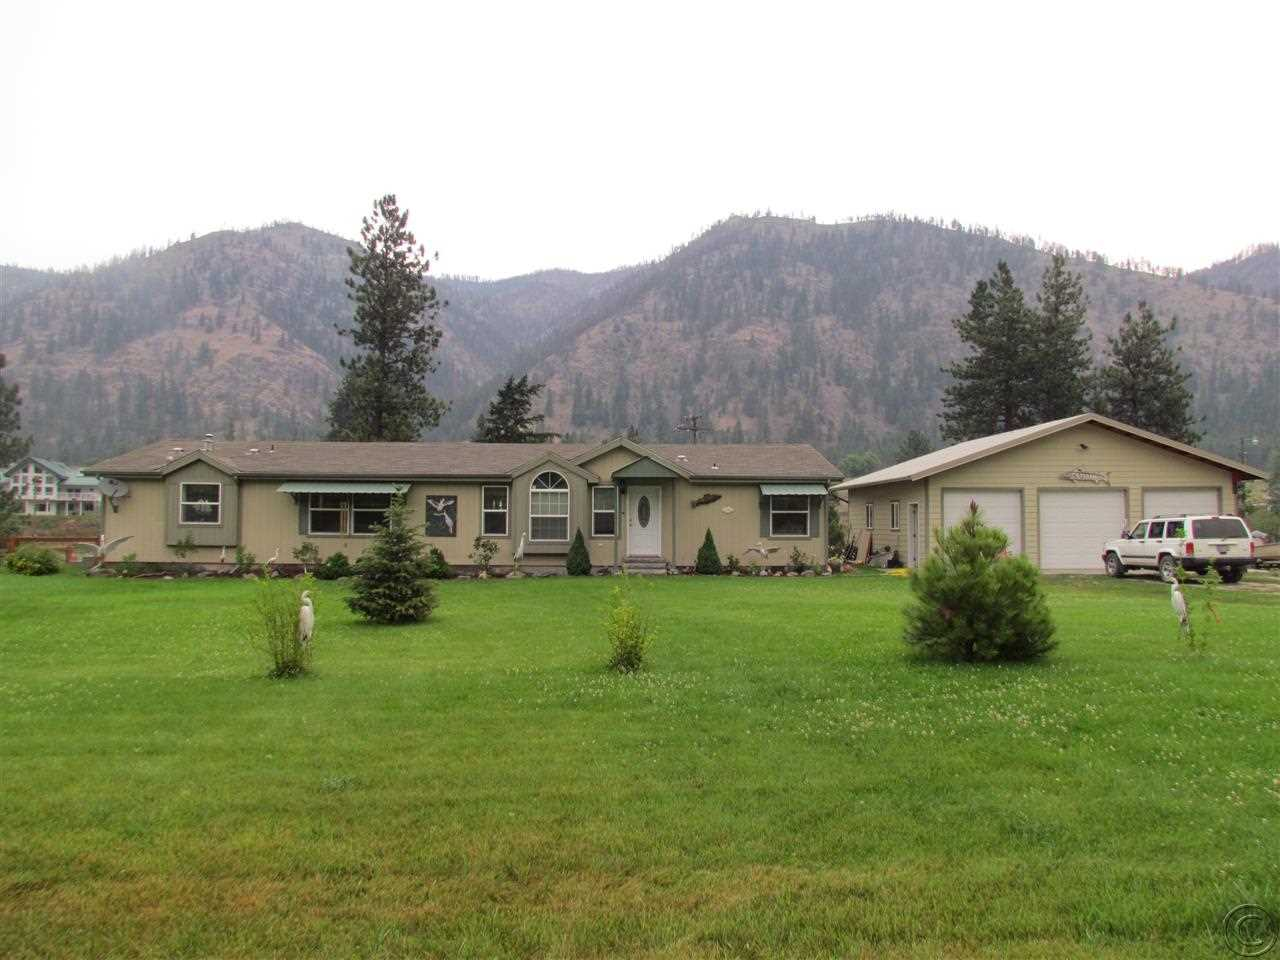 506 Dairy Ln, Superior, MT 59872